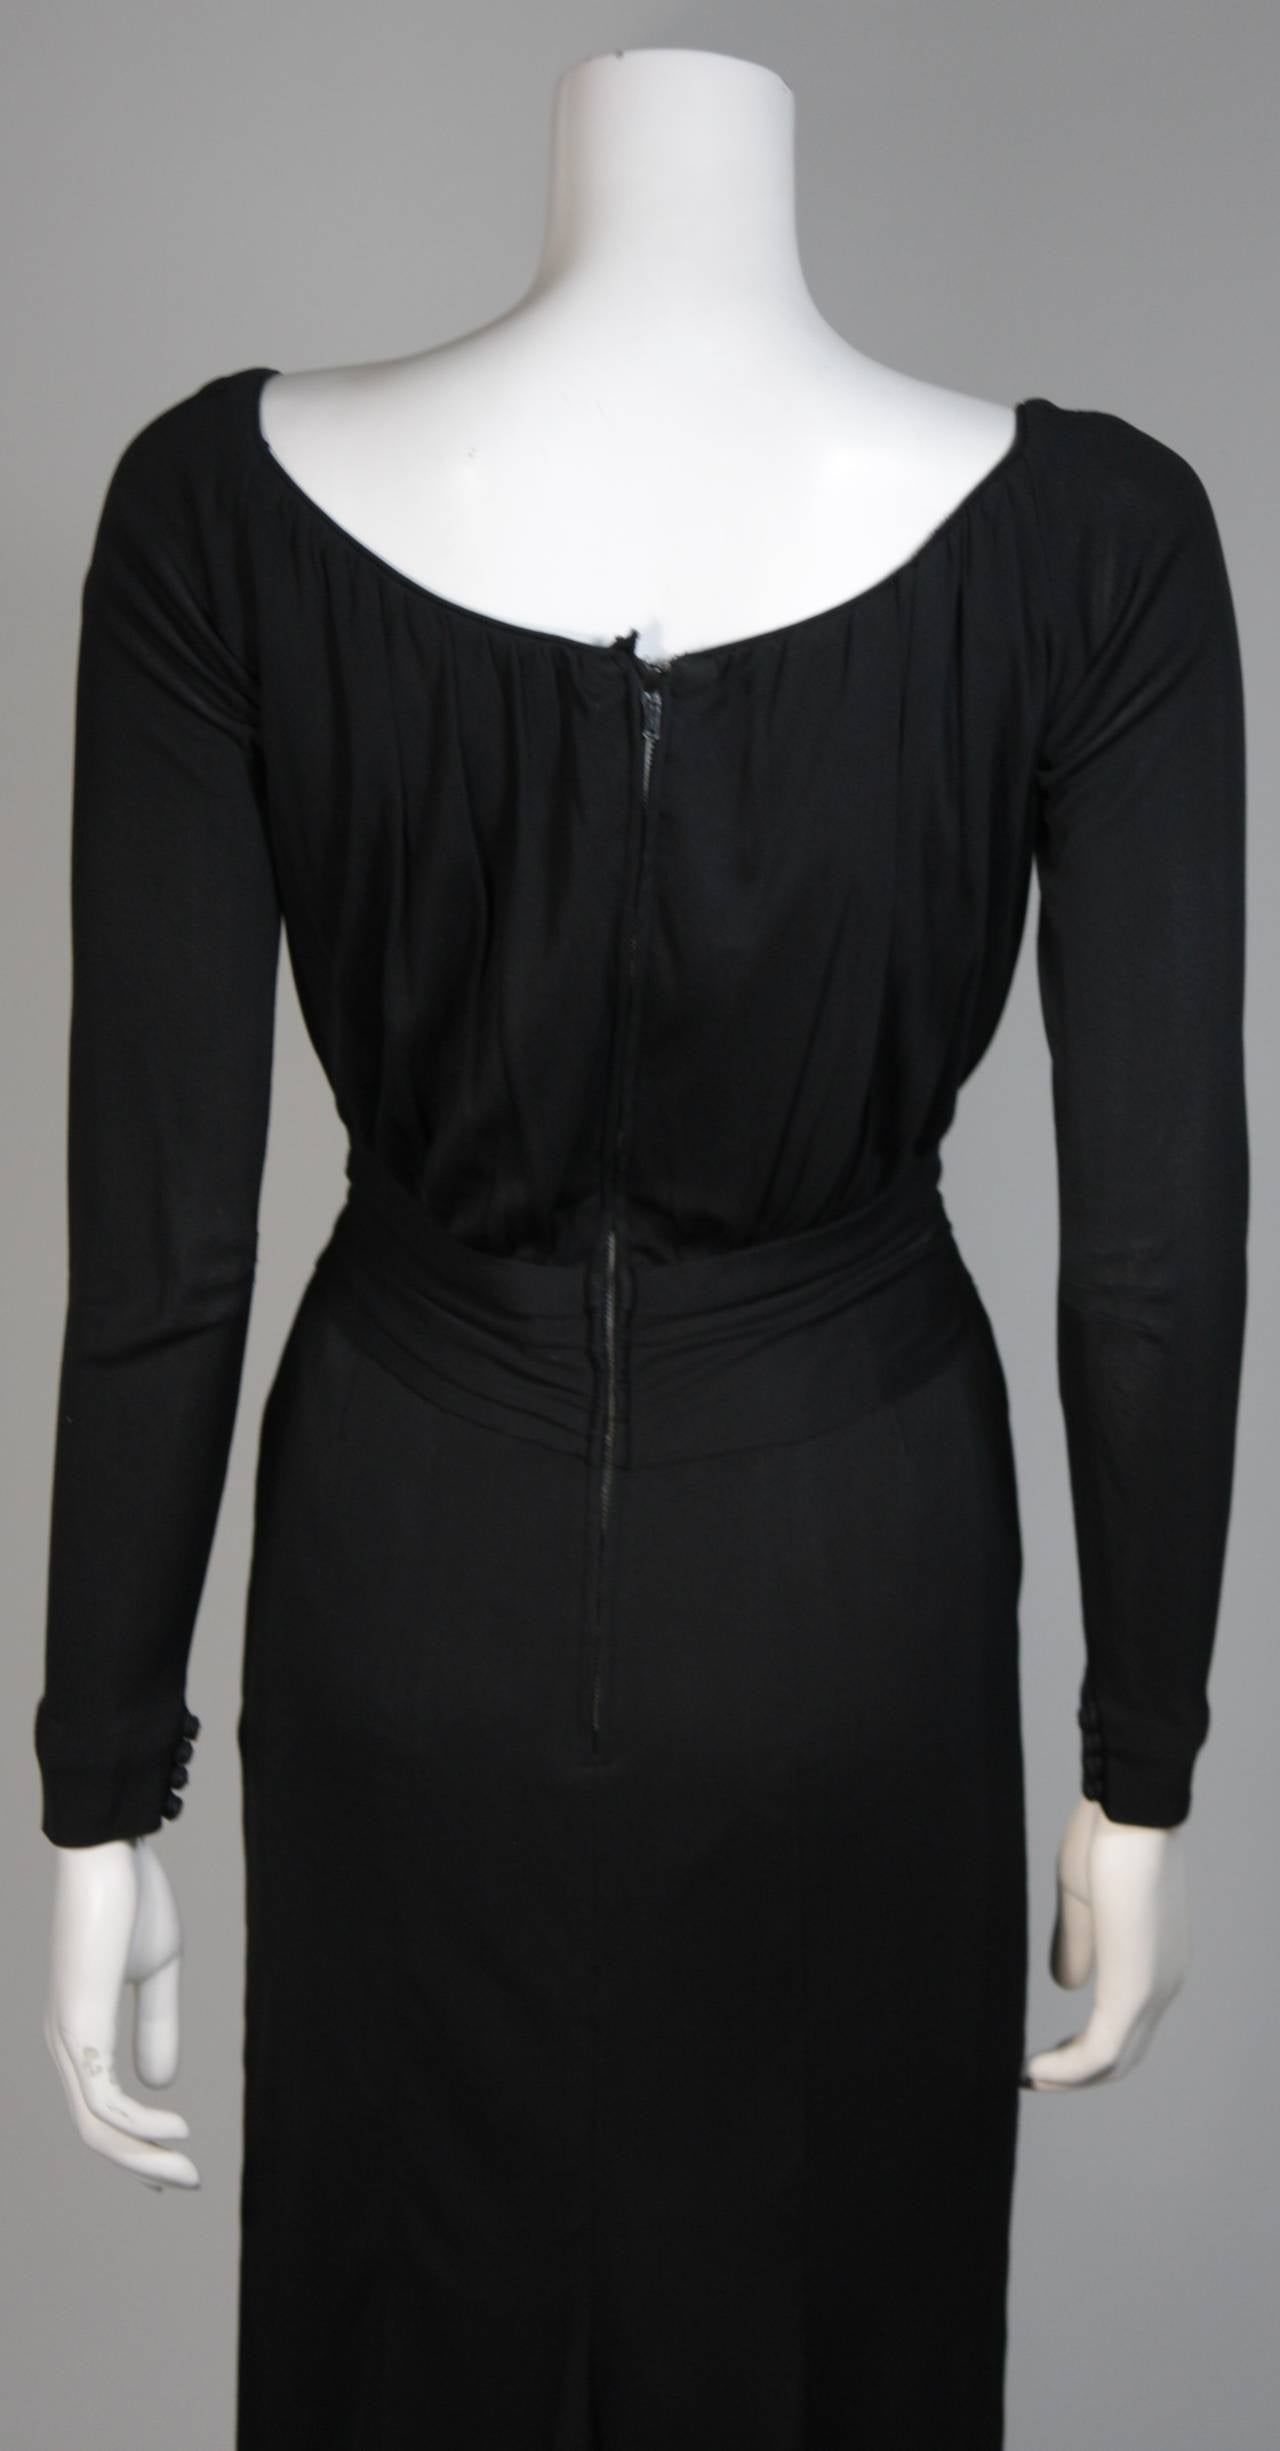 Ceil Chapman Black Silk Crepe Cocktail Dress with Gathers Size 4-6 For Sale 5